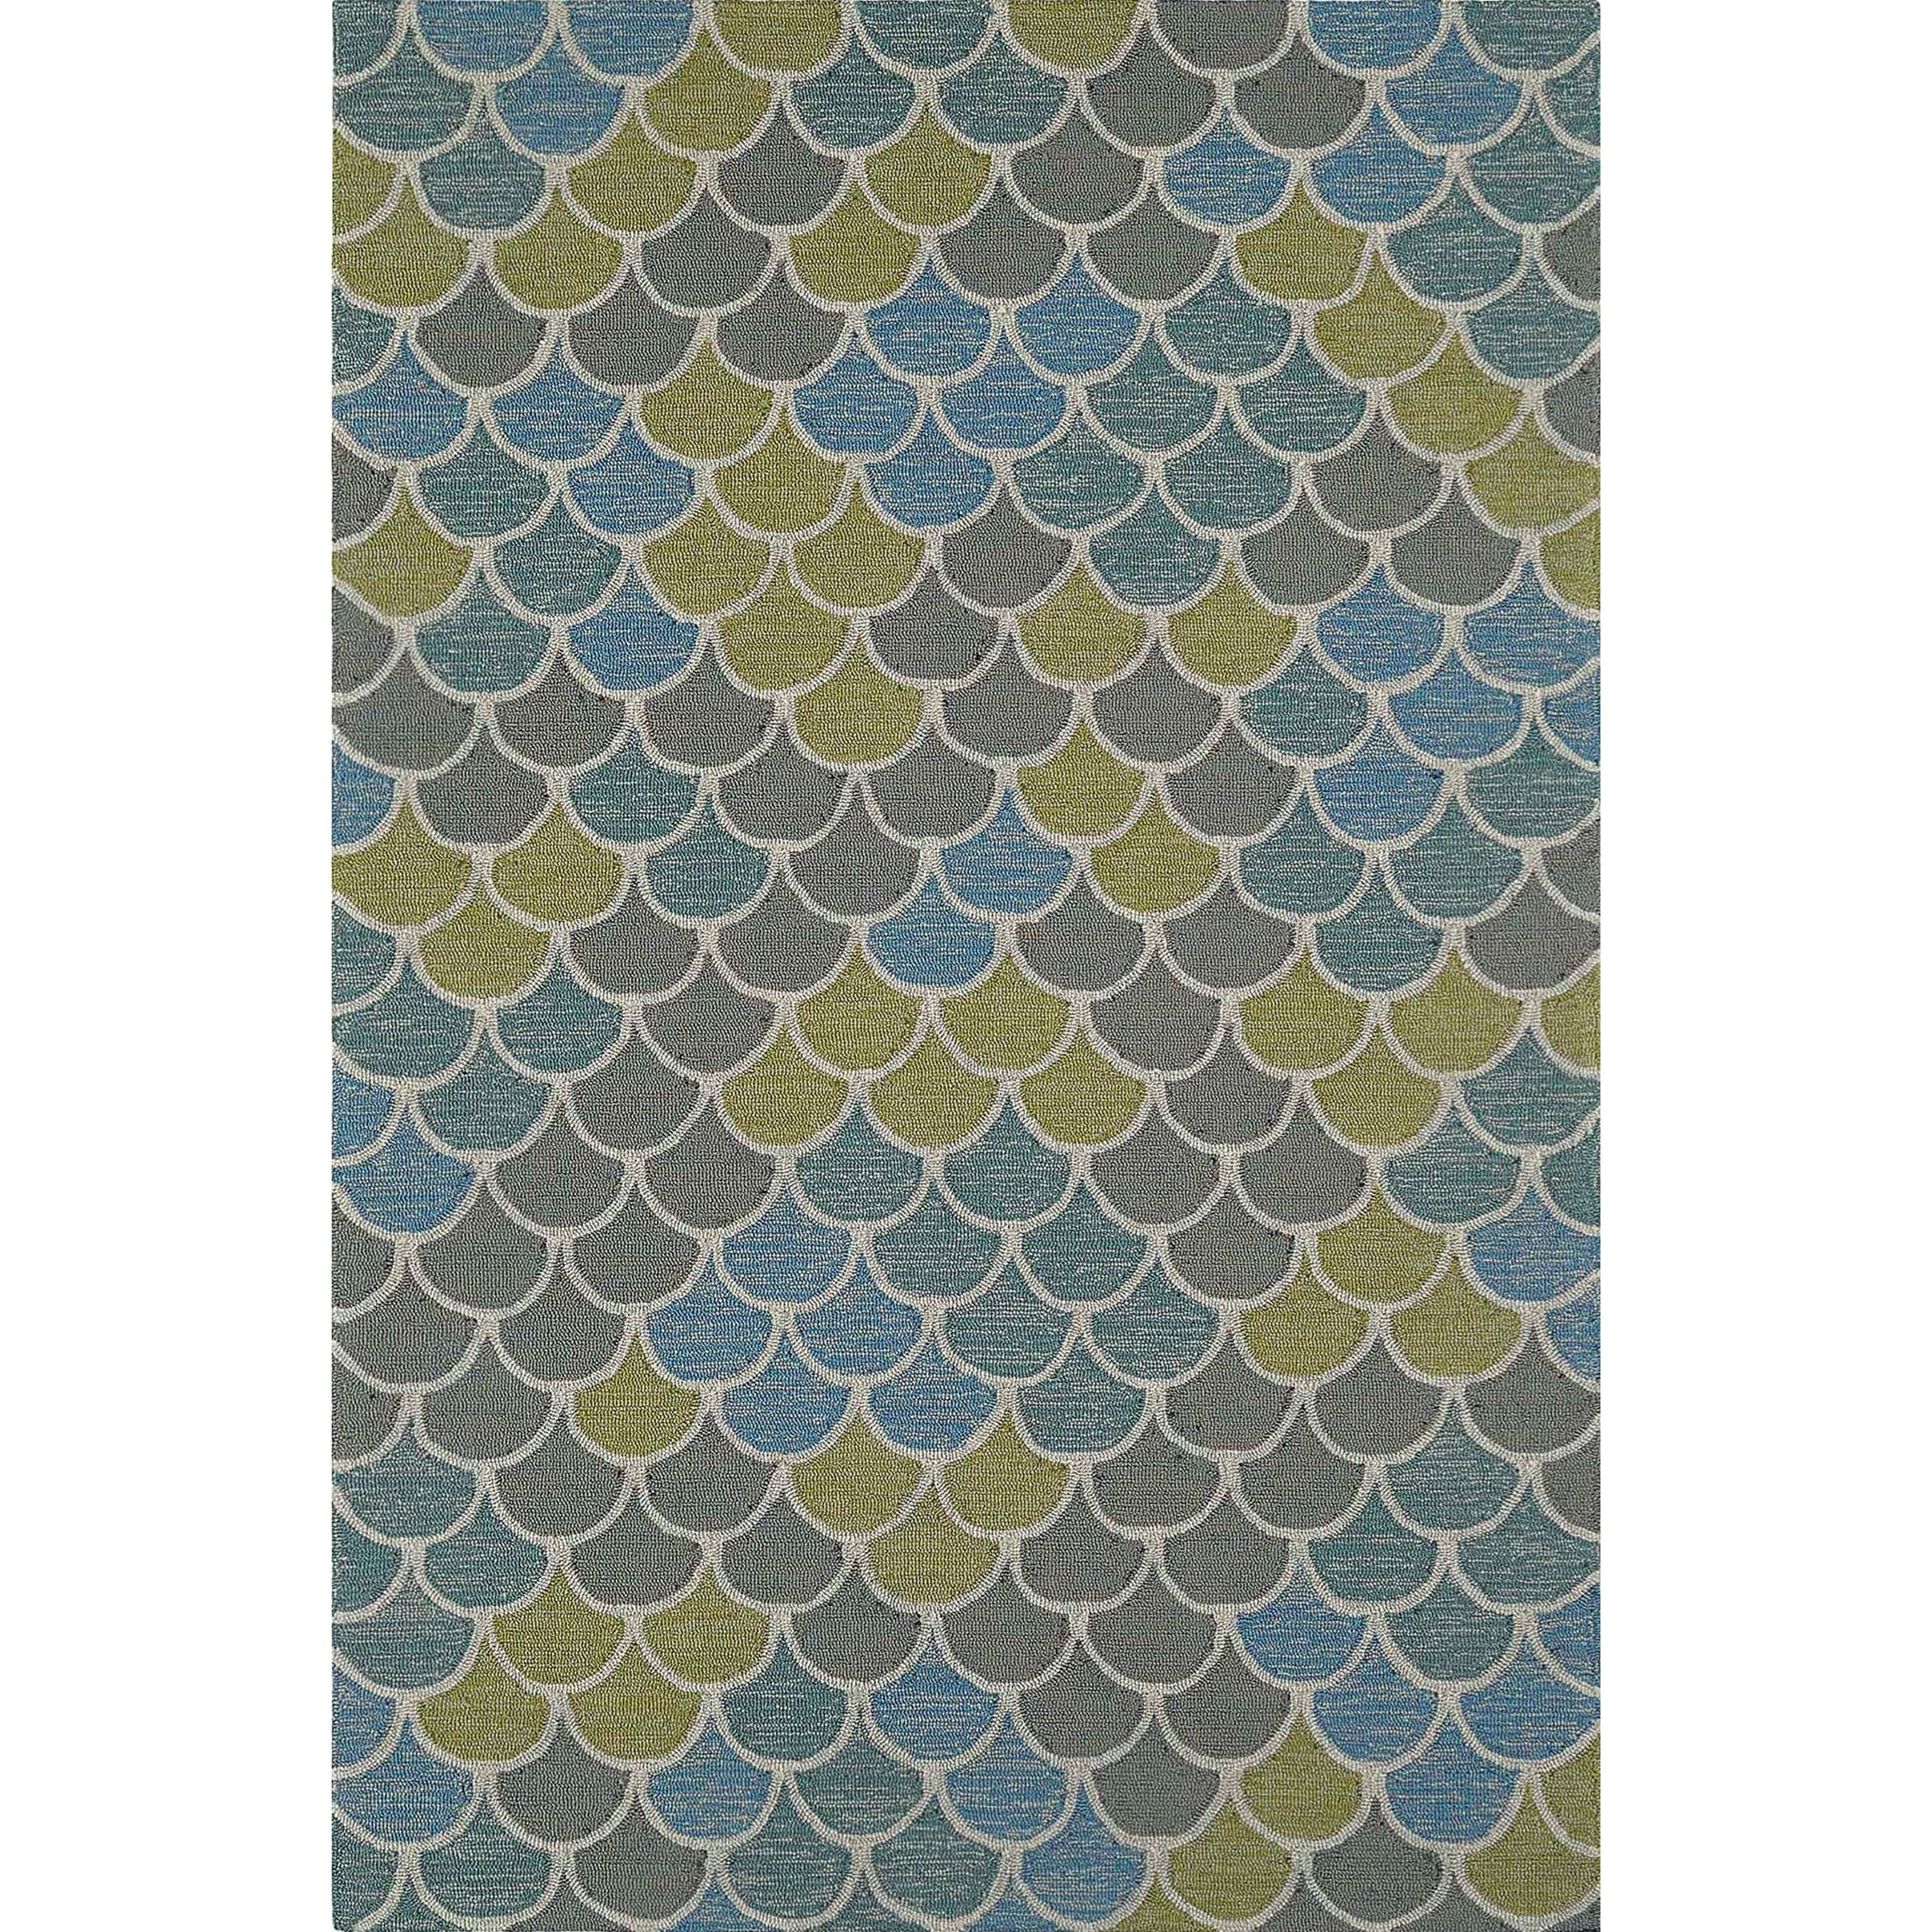 Cabana Multi 8'X10' Rug by Dalyn at Sadler's Home Furnishings